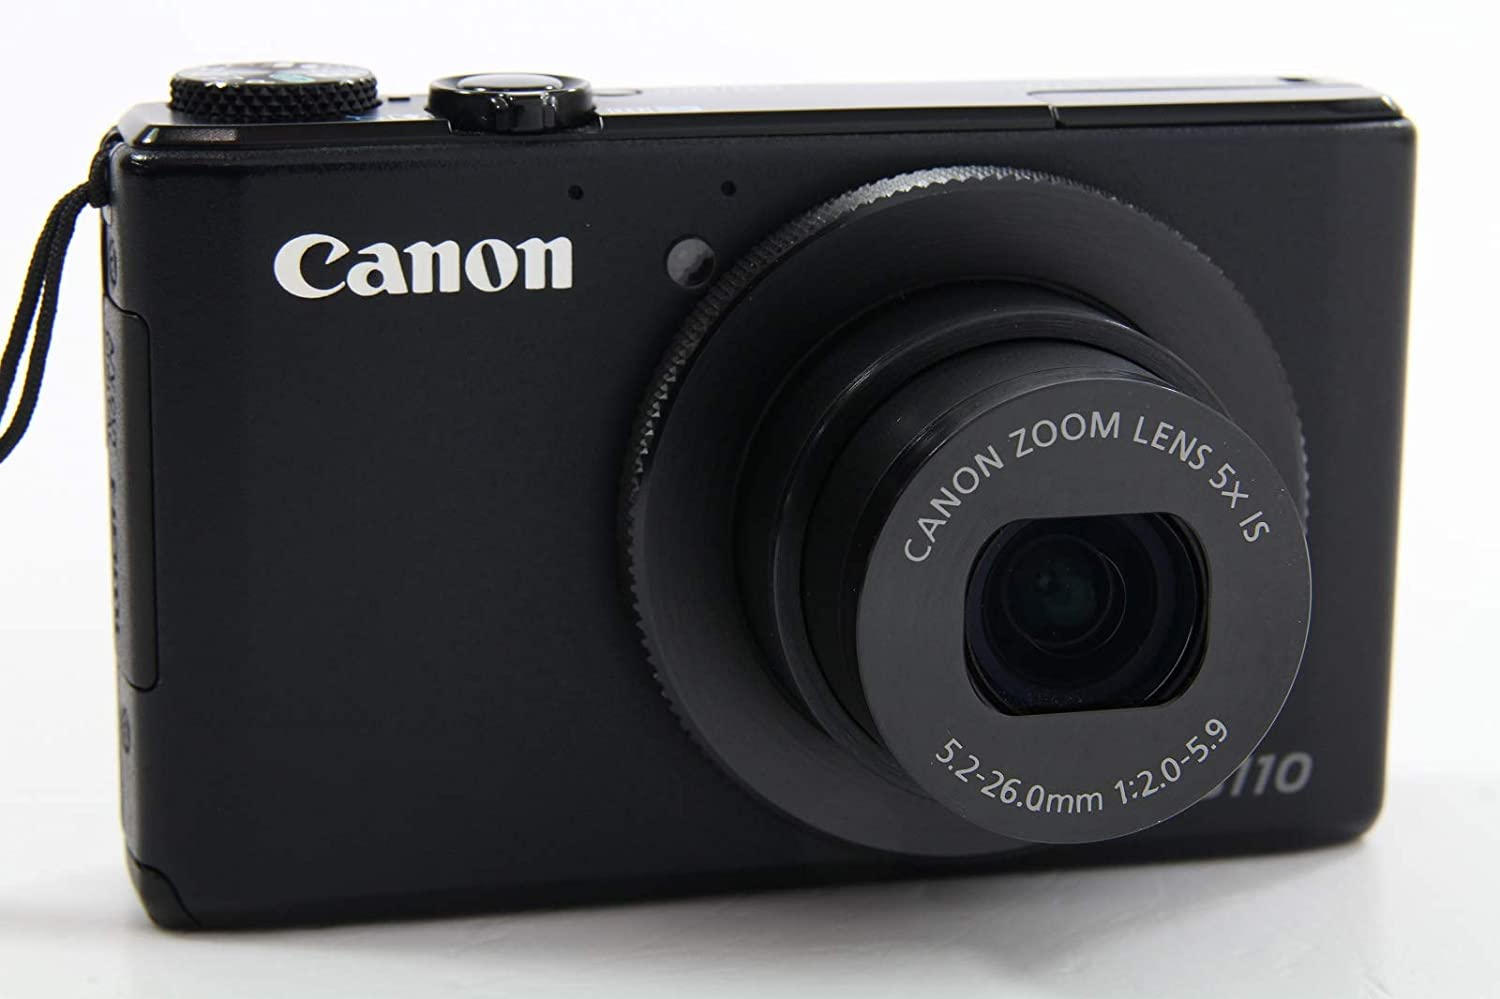 Canon PowerShot S110 - Cámara Digital compacta de 12.1 MP ...